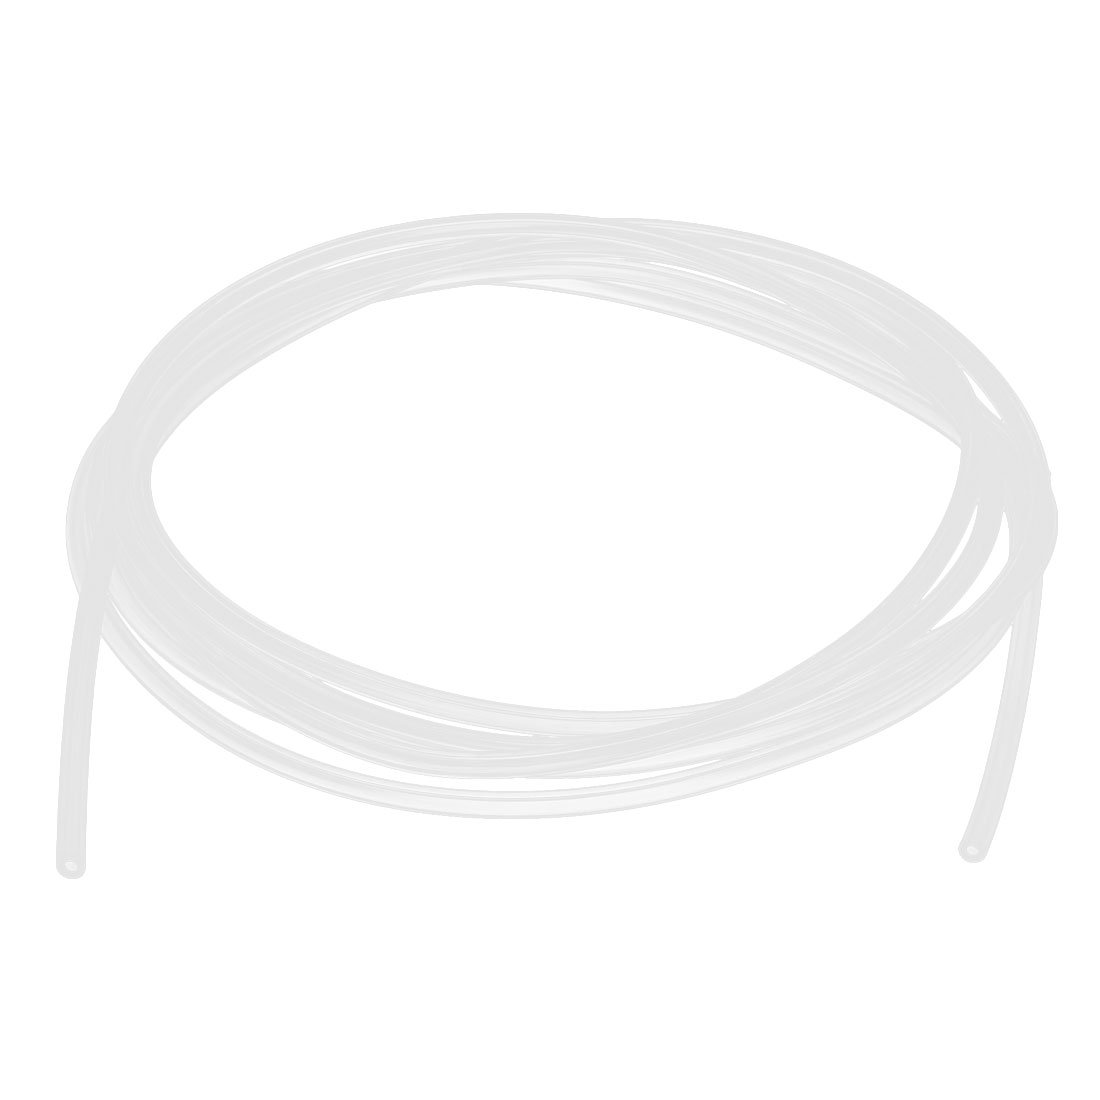 uxcell Silicone Sales for sale Tube 1mm ID x Rub 3mm OD 6.56' Flexible OFFicial